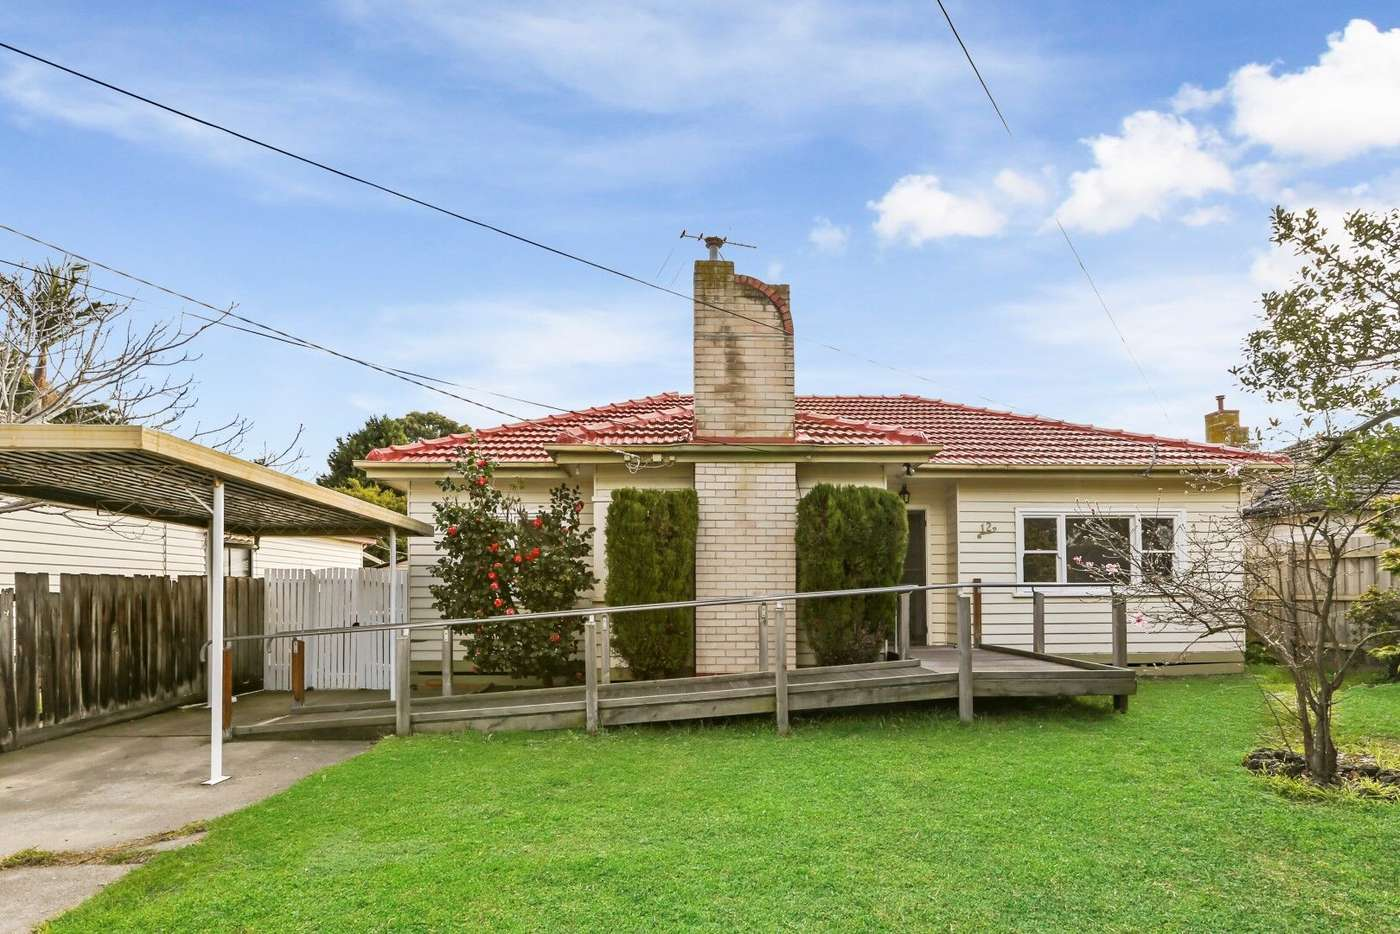 Main view of Homely house listing, 12 Blaby Street, Noble Park VIC 3174